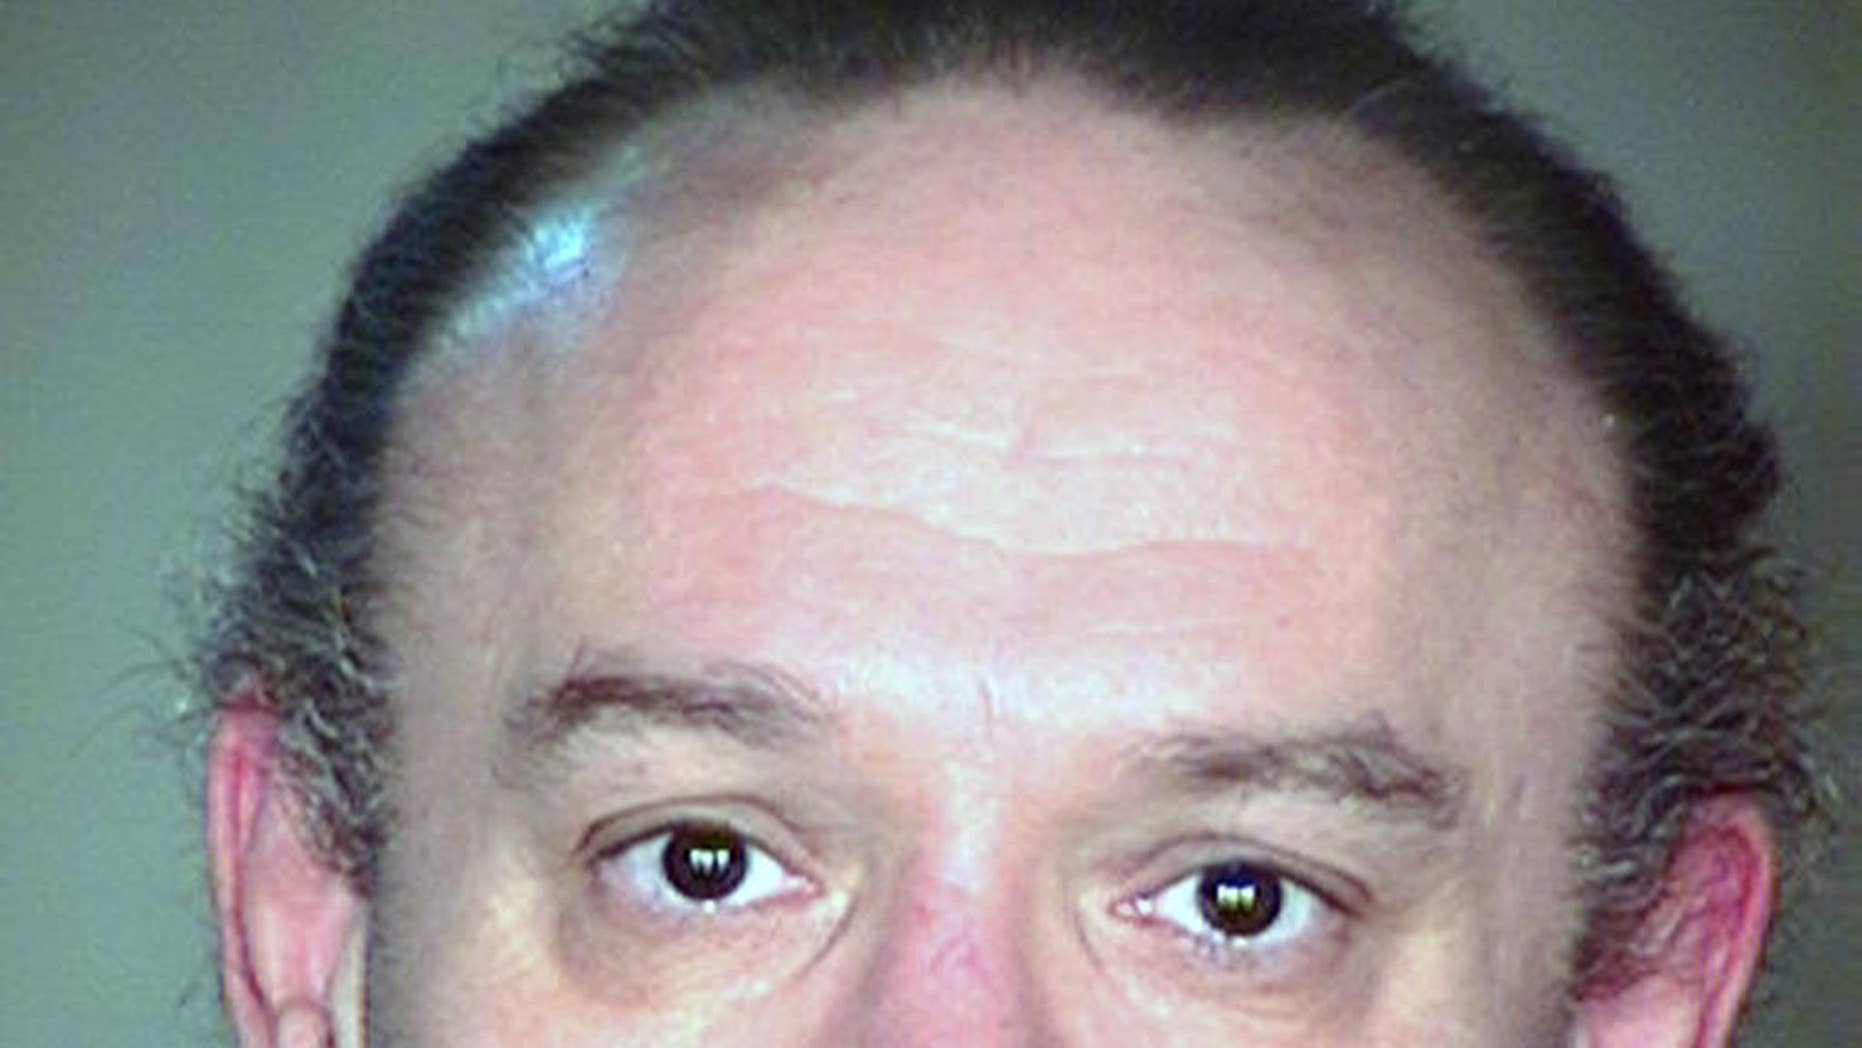 This undated booking photo provided by the Arizona Department of Corrections shows Joseph Wood. Executions in Arizona have been on hold since the 2014 death of convicted killer Wood, who was given 15 doses of the sedative midazolam and a painkiller and who took nearly two hours to die. Arizona has recently changed its death-penalty procedures by letting inmates seek the lethal-injection drugs that will be used in their executions. The new policy emerged in a lawsuit protesting the way Arizona carries out the death penalty.(Arizona Department of Corrections via AP)